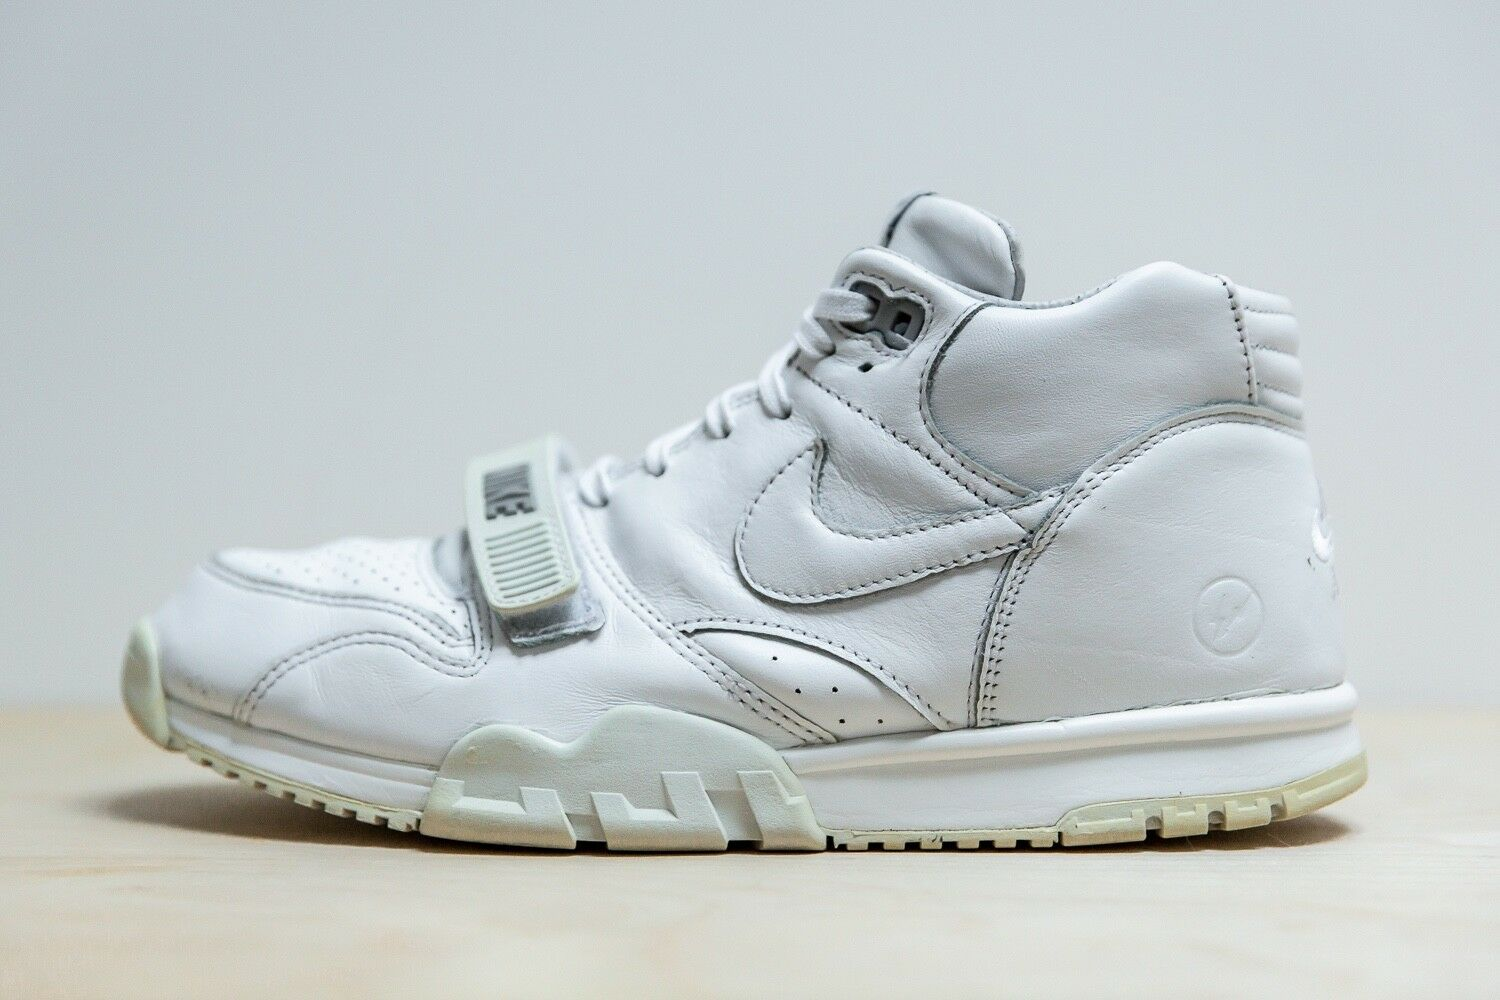 Nike x Fragment - Air Trainer 1 - White - Size 11 - Pre-Owned  7 10 - 806942-110